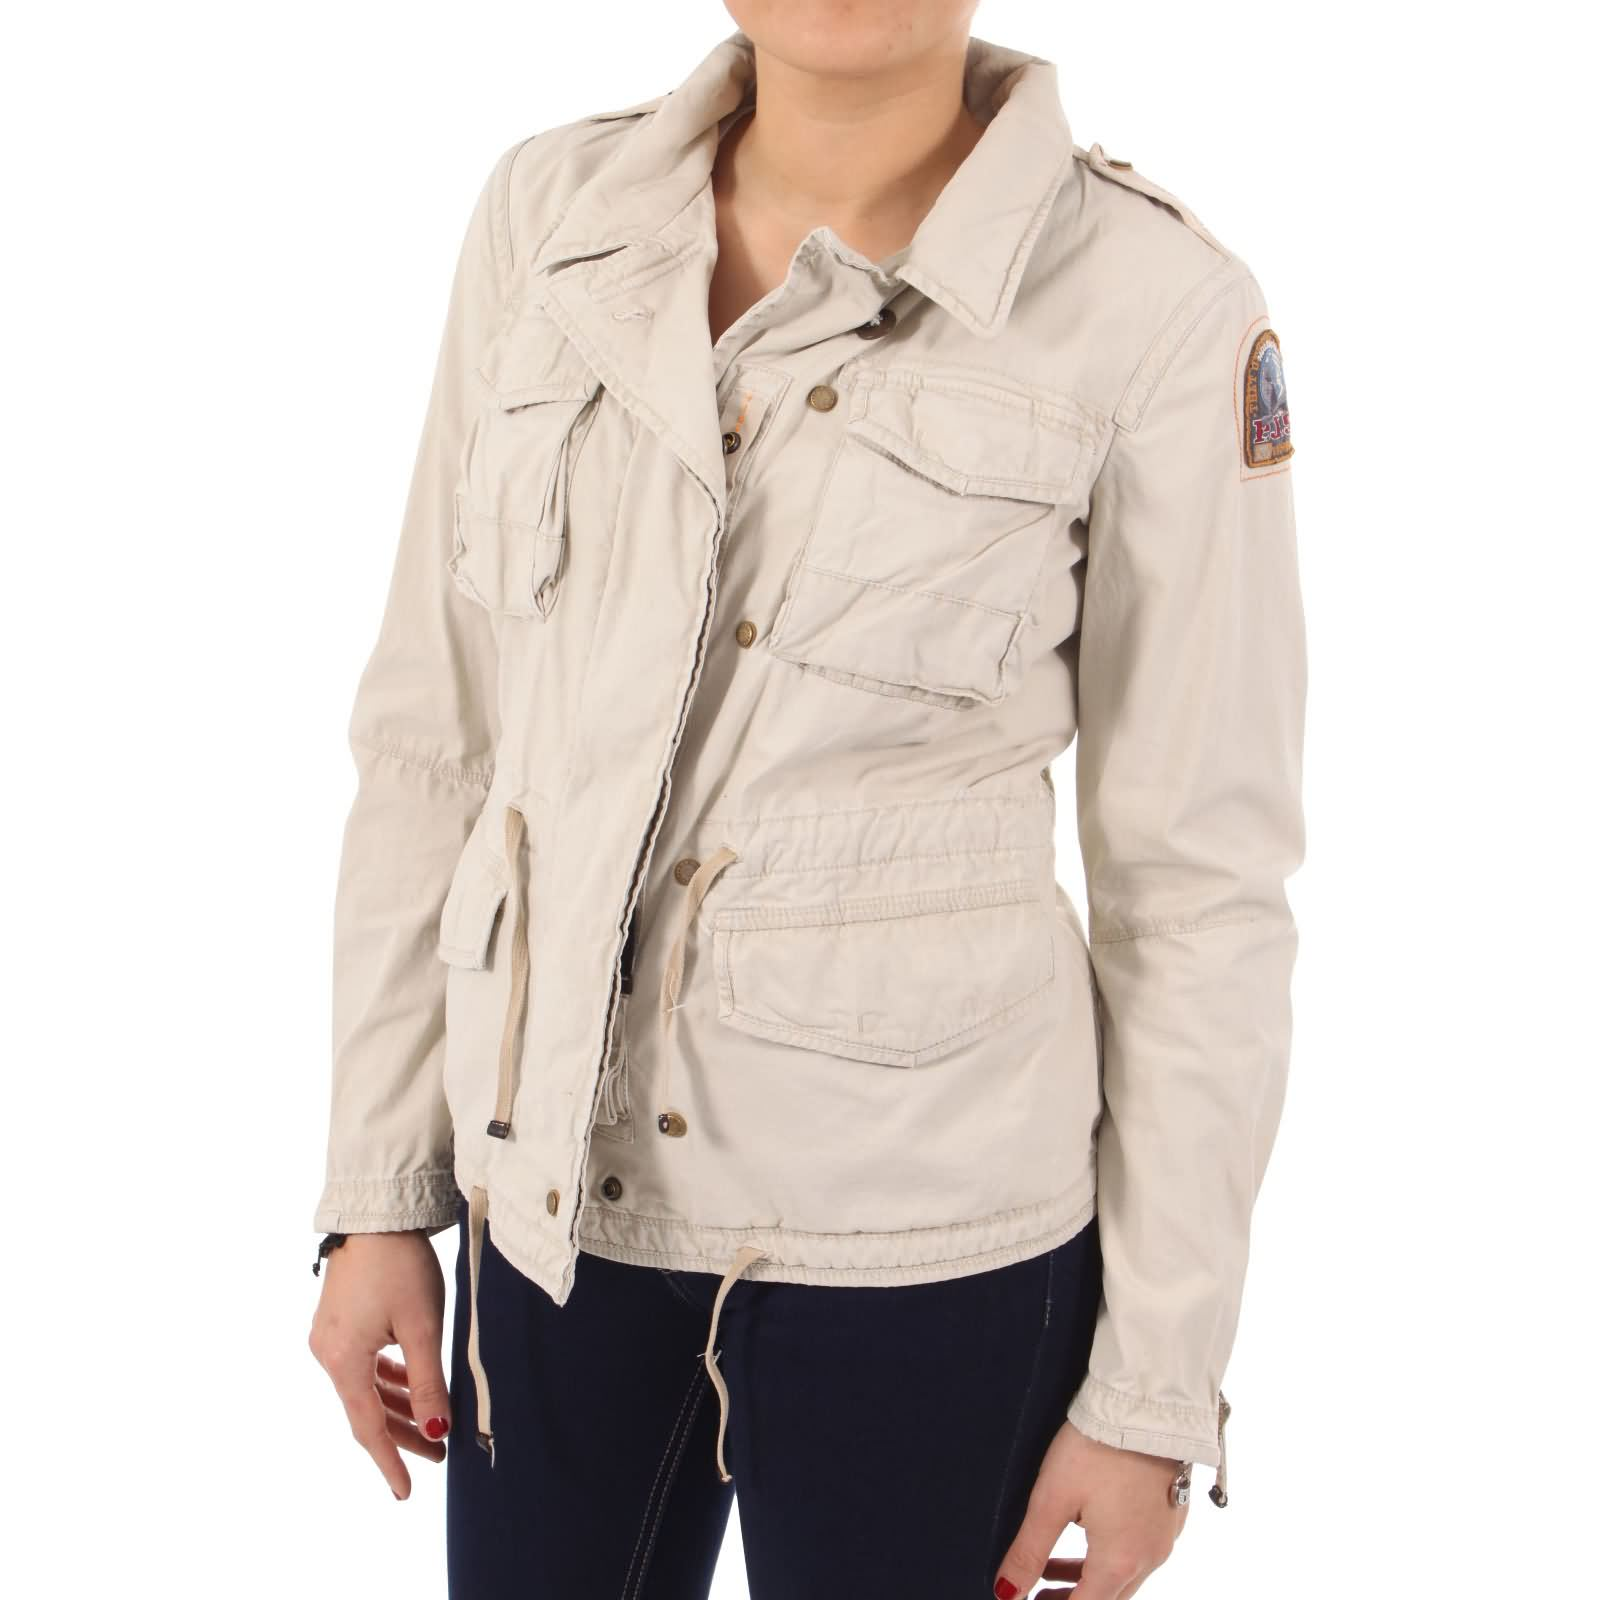 parajumpers damen sommer jacke jenny sand ebay. Black Bedroom Furniture Sets. Home Design Ideas